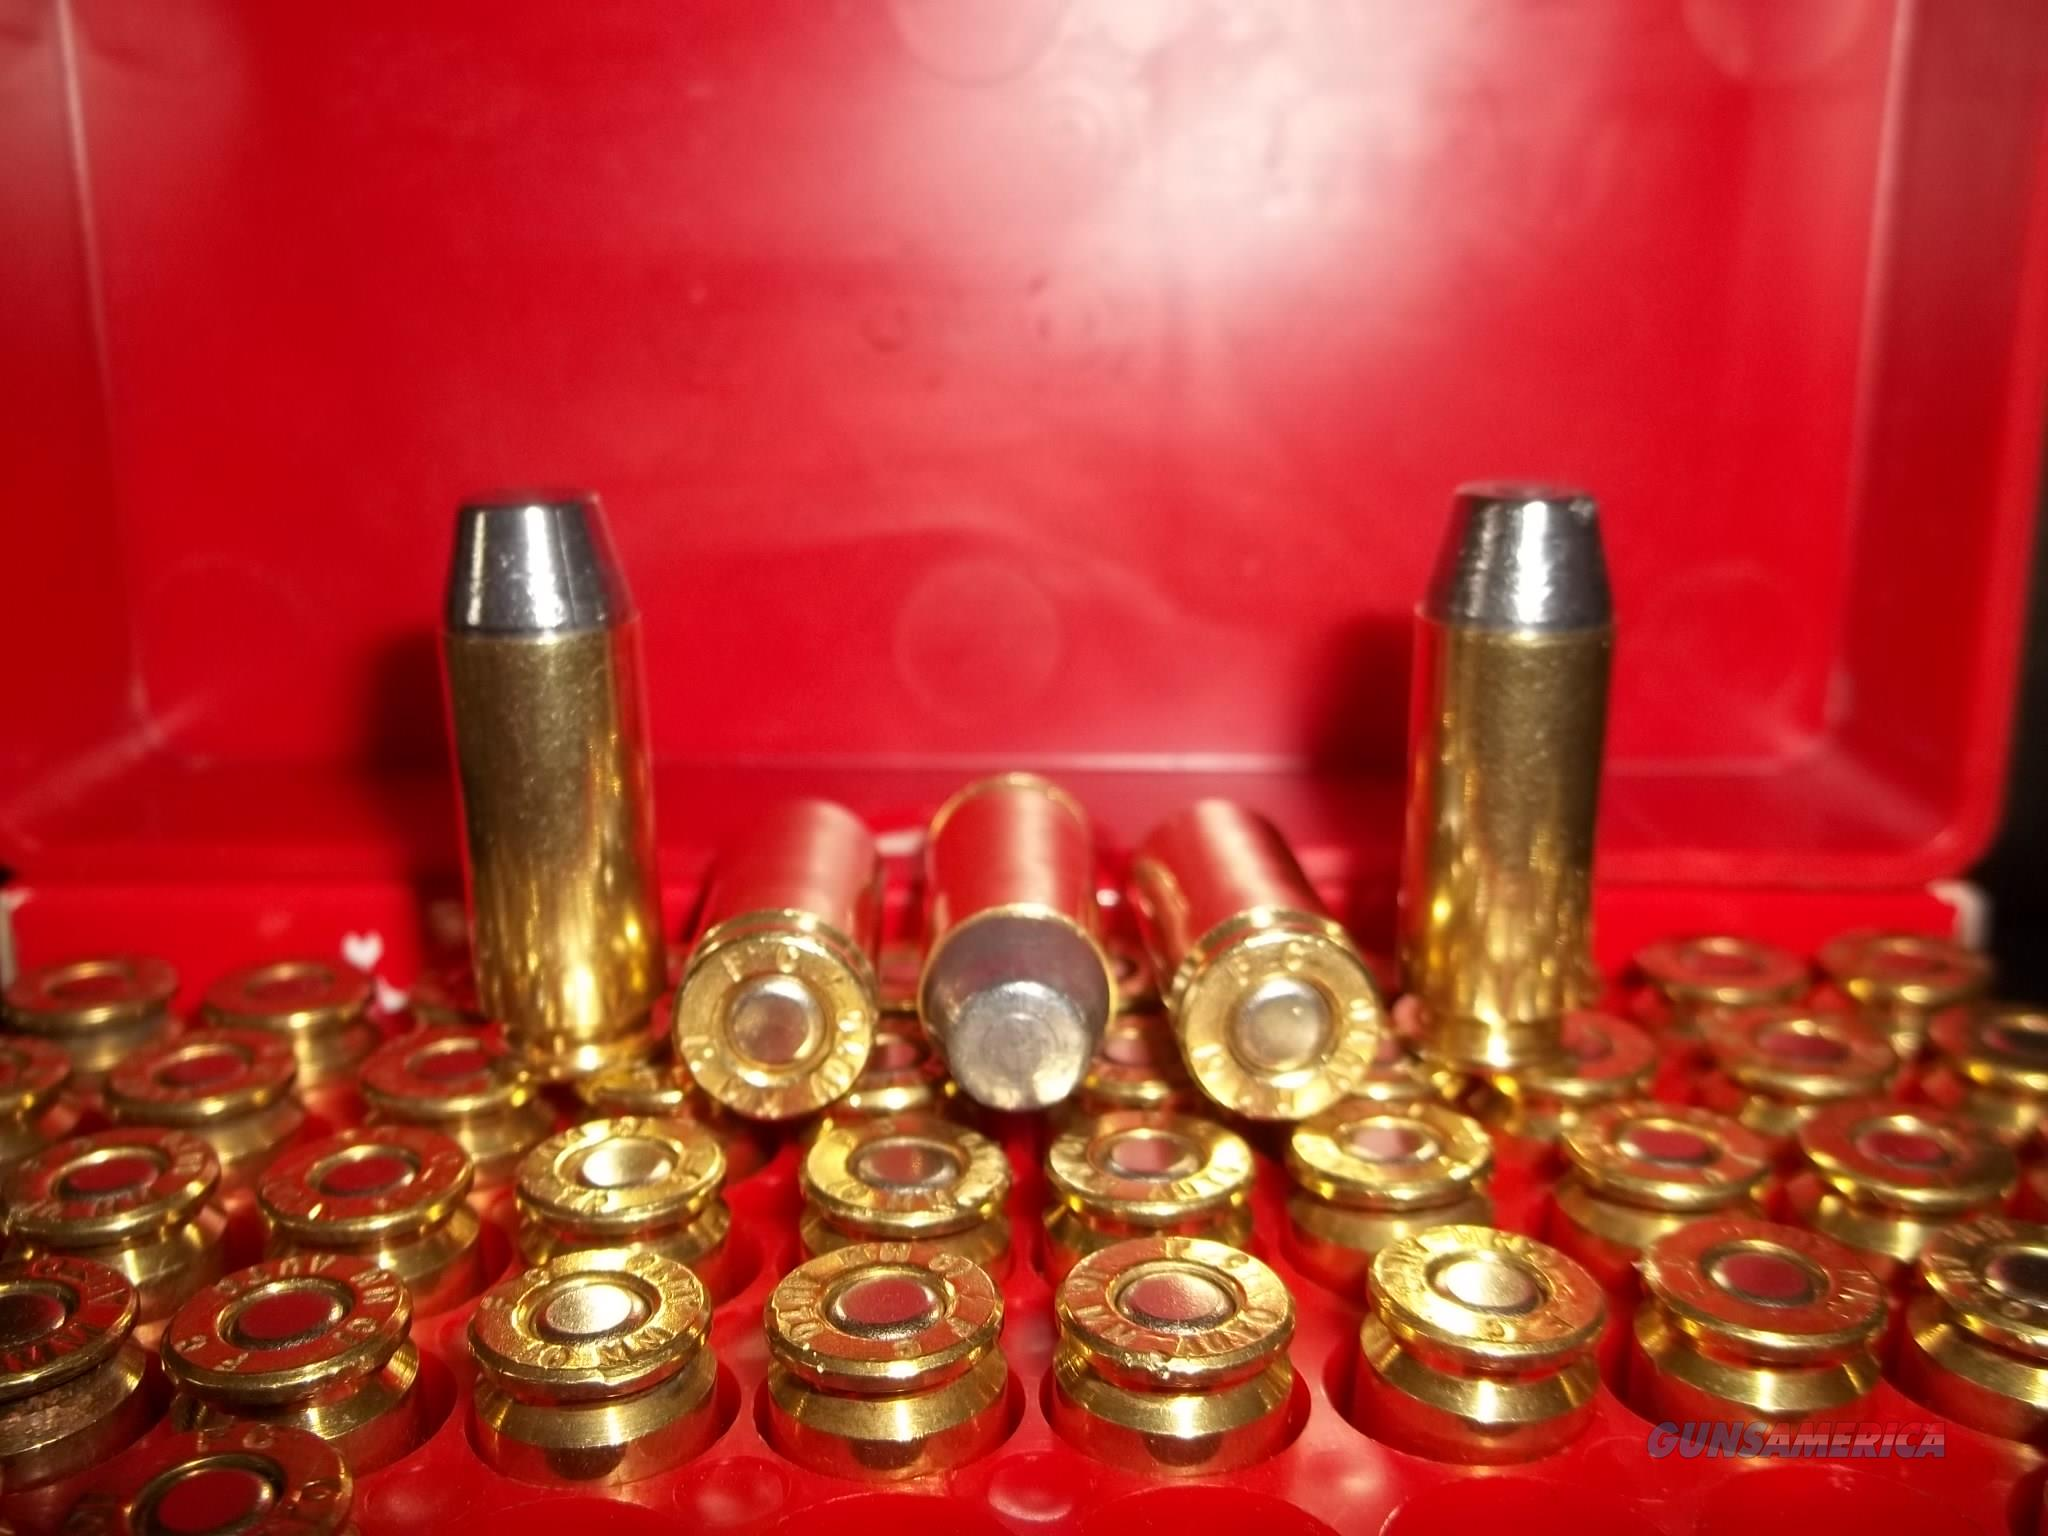 10mm Auto Ammo.  Non-Guns > Ammunition